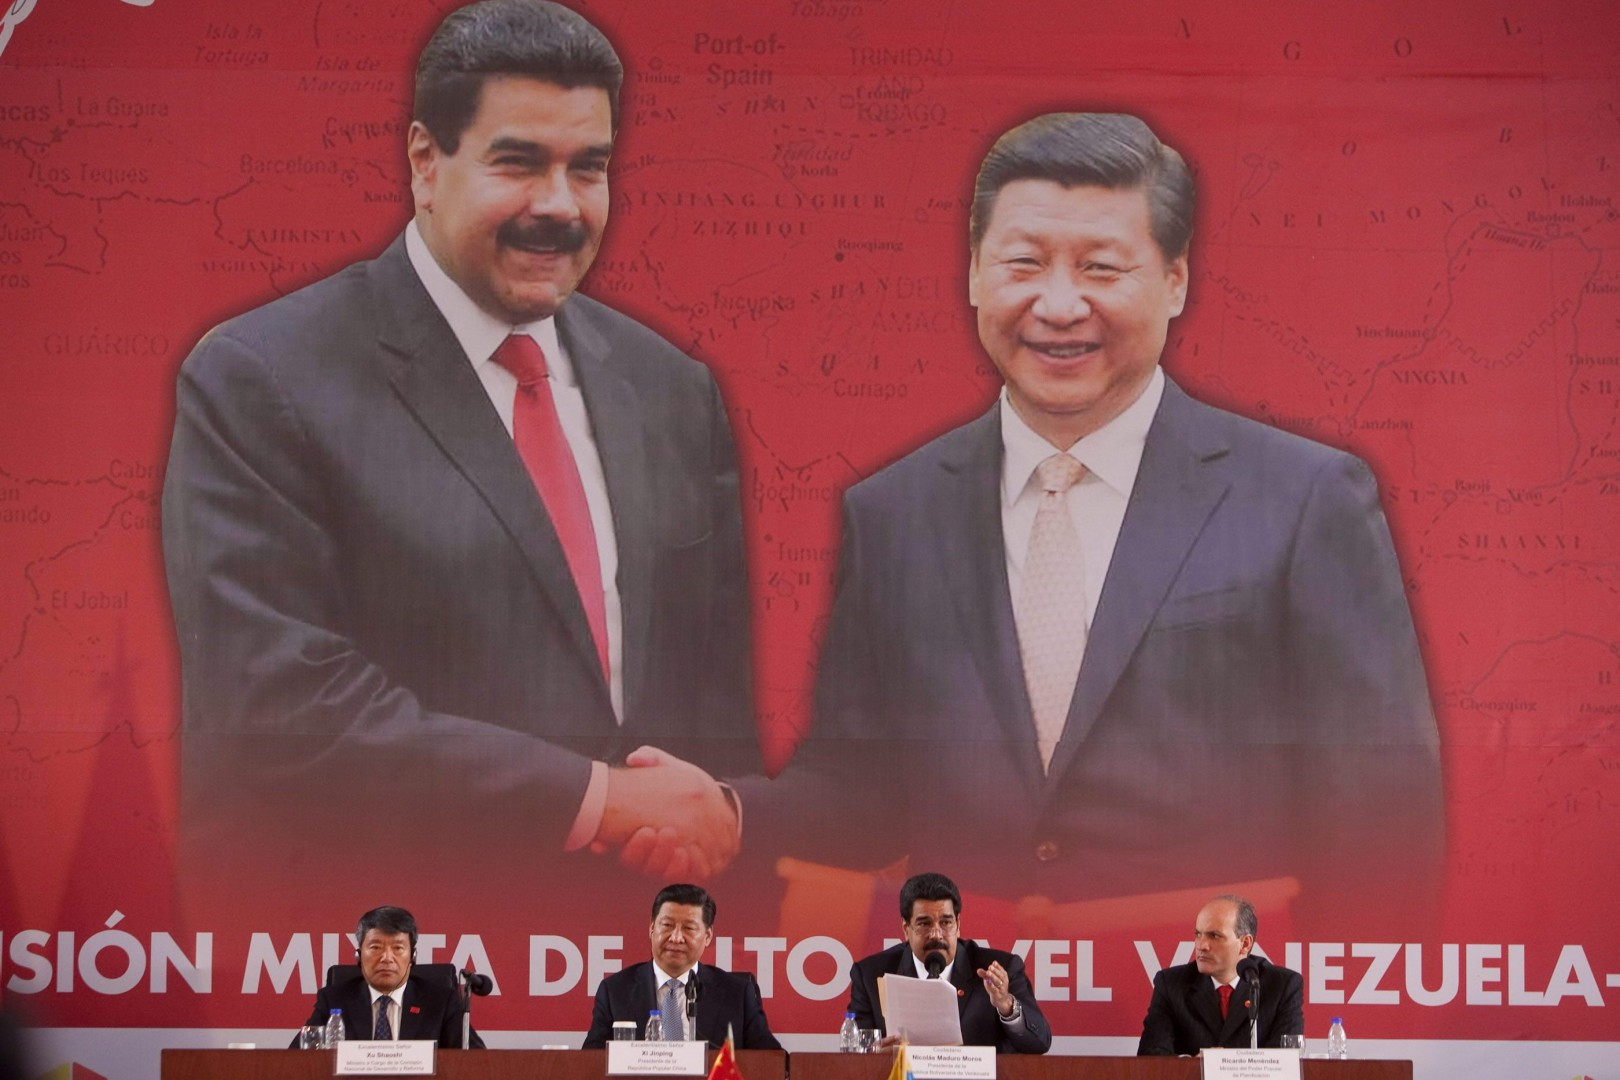 Chinese President Xi Jinping (2nd-L) addresses a press conference after his meeting with his Venezuelan counterpart Nicolas Maduro (2nd-R) in Caracas, Venezuela, 21 July 2014. Xi Jinping is in Venezuela for a 24-hour state visit, where he has signed bilateral agreements. EFE/Miguel Gutierrez